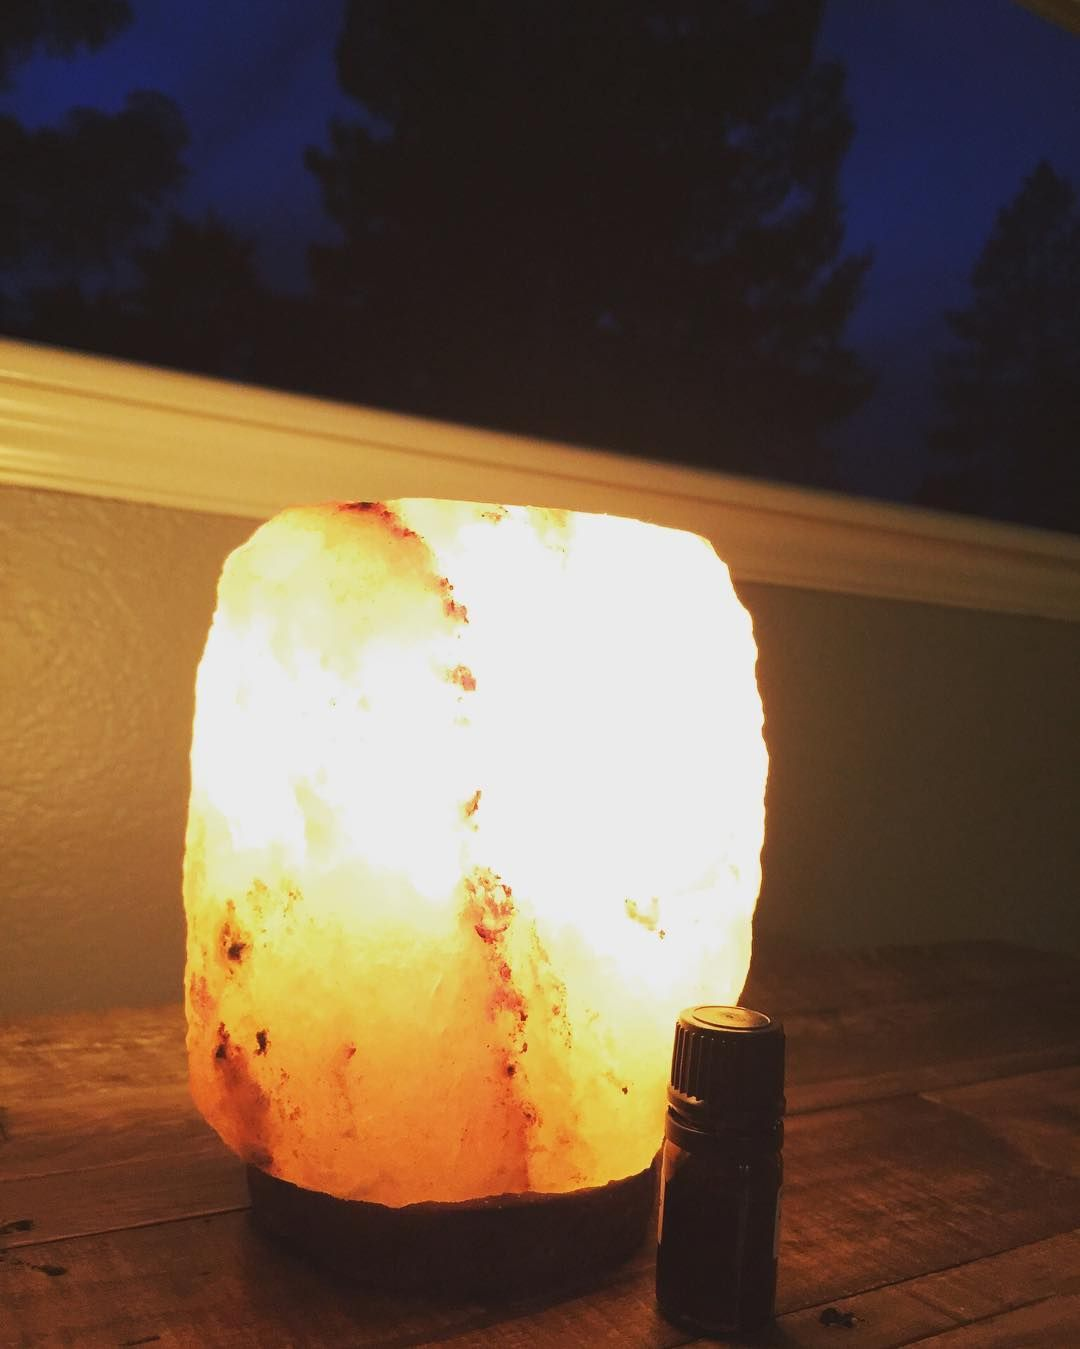 Friday night vibes  Testing a new Mamas Ritual blend in my salt lamp diffuser.